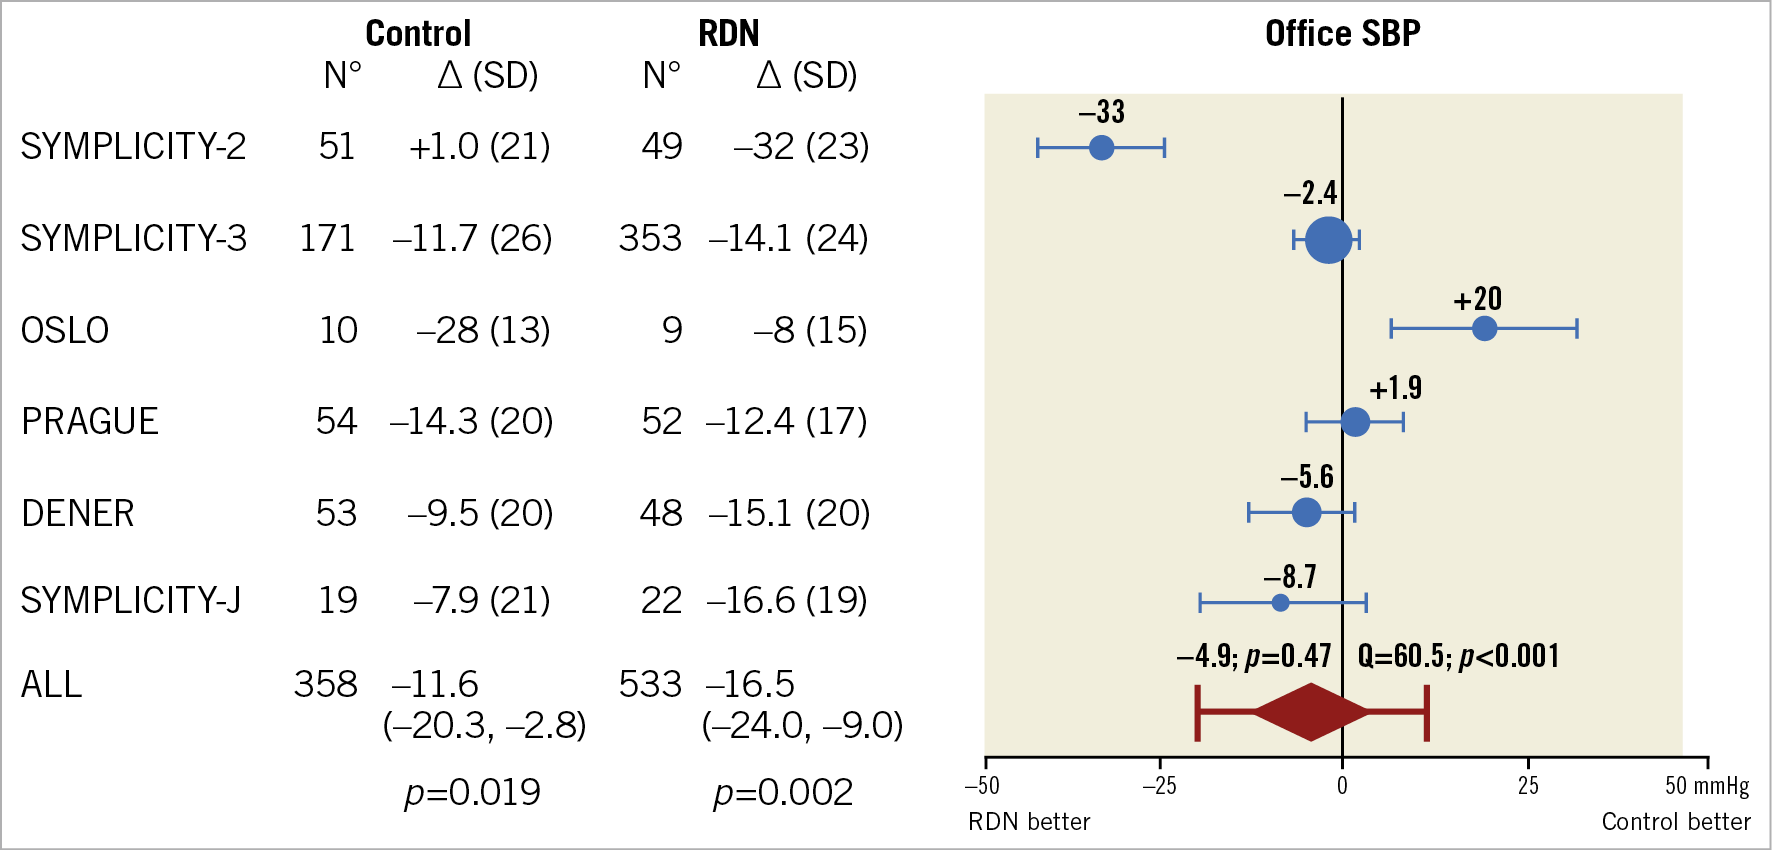 Figure 6. Meta-analysis of randomised controlled trials of renal denervation in treatment-resistant hypertension showing office systolic blood pressure.